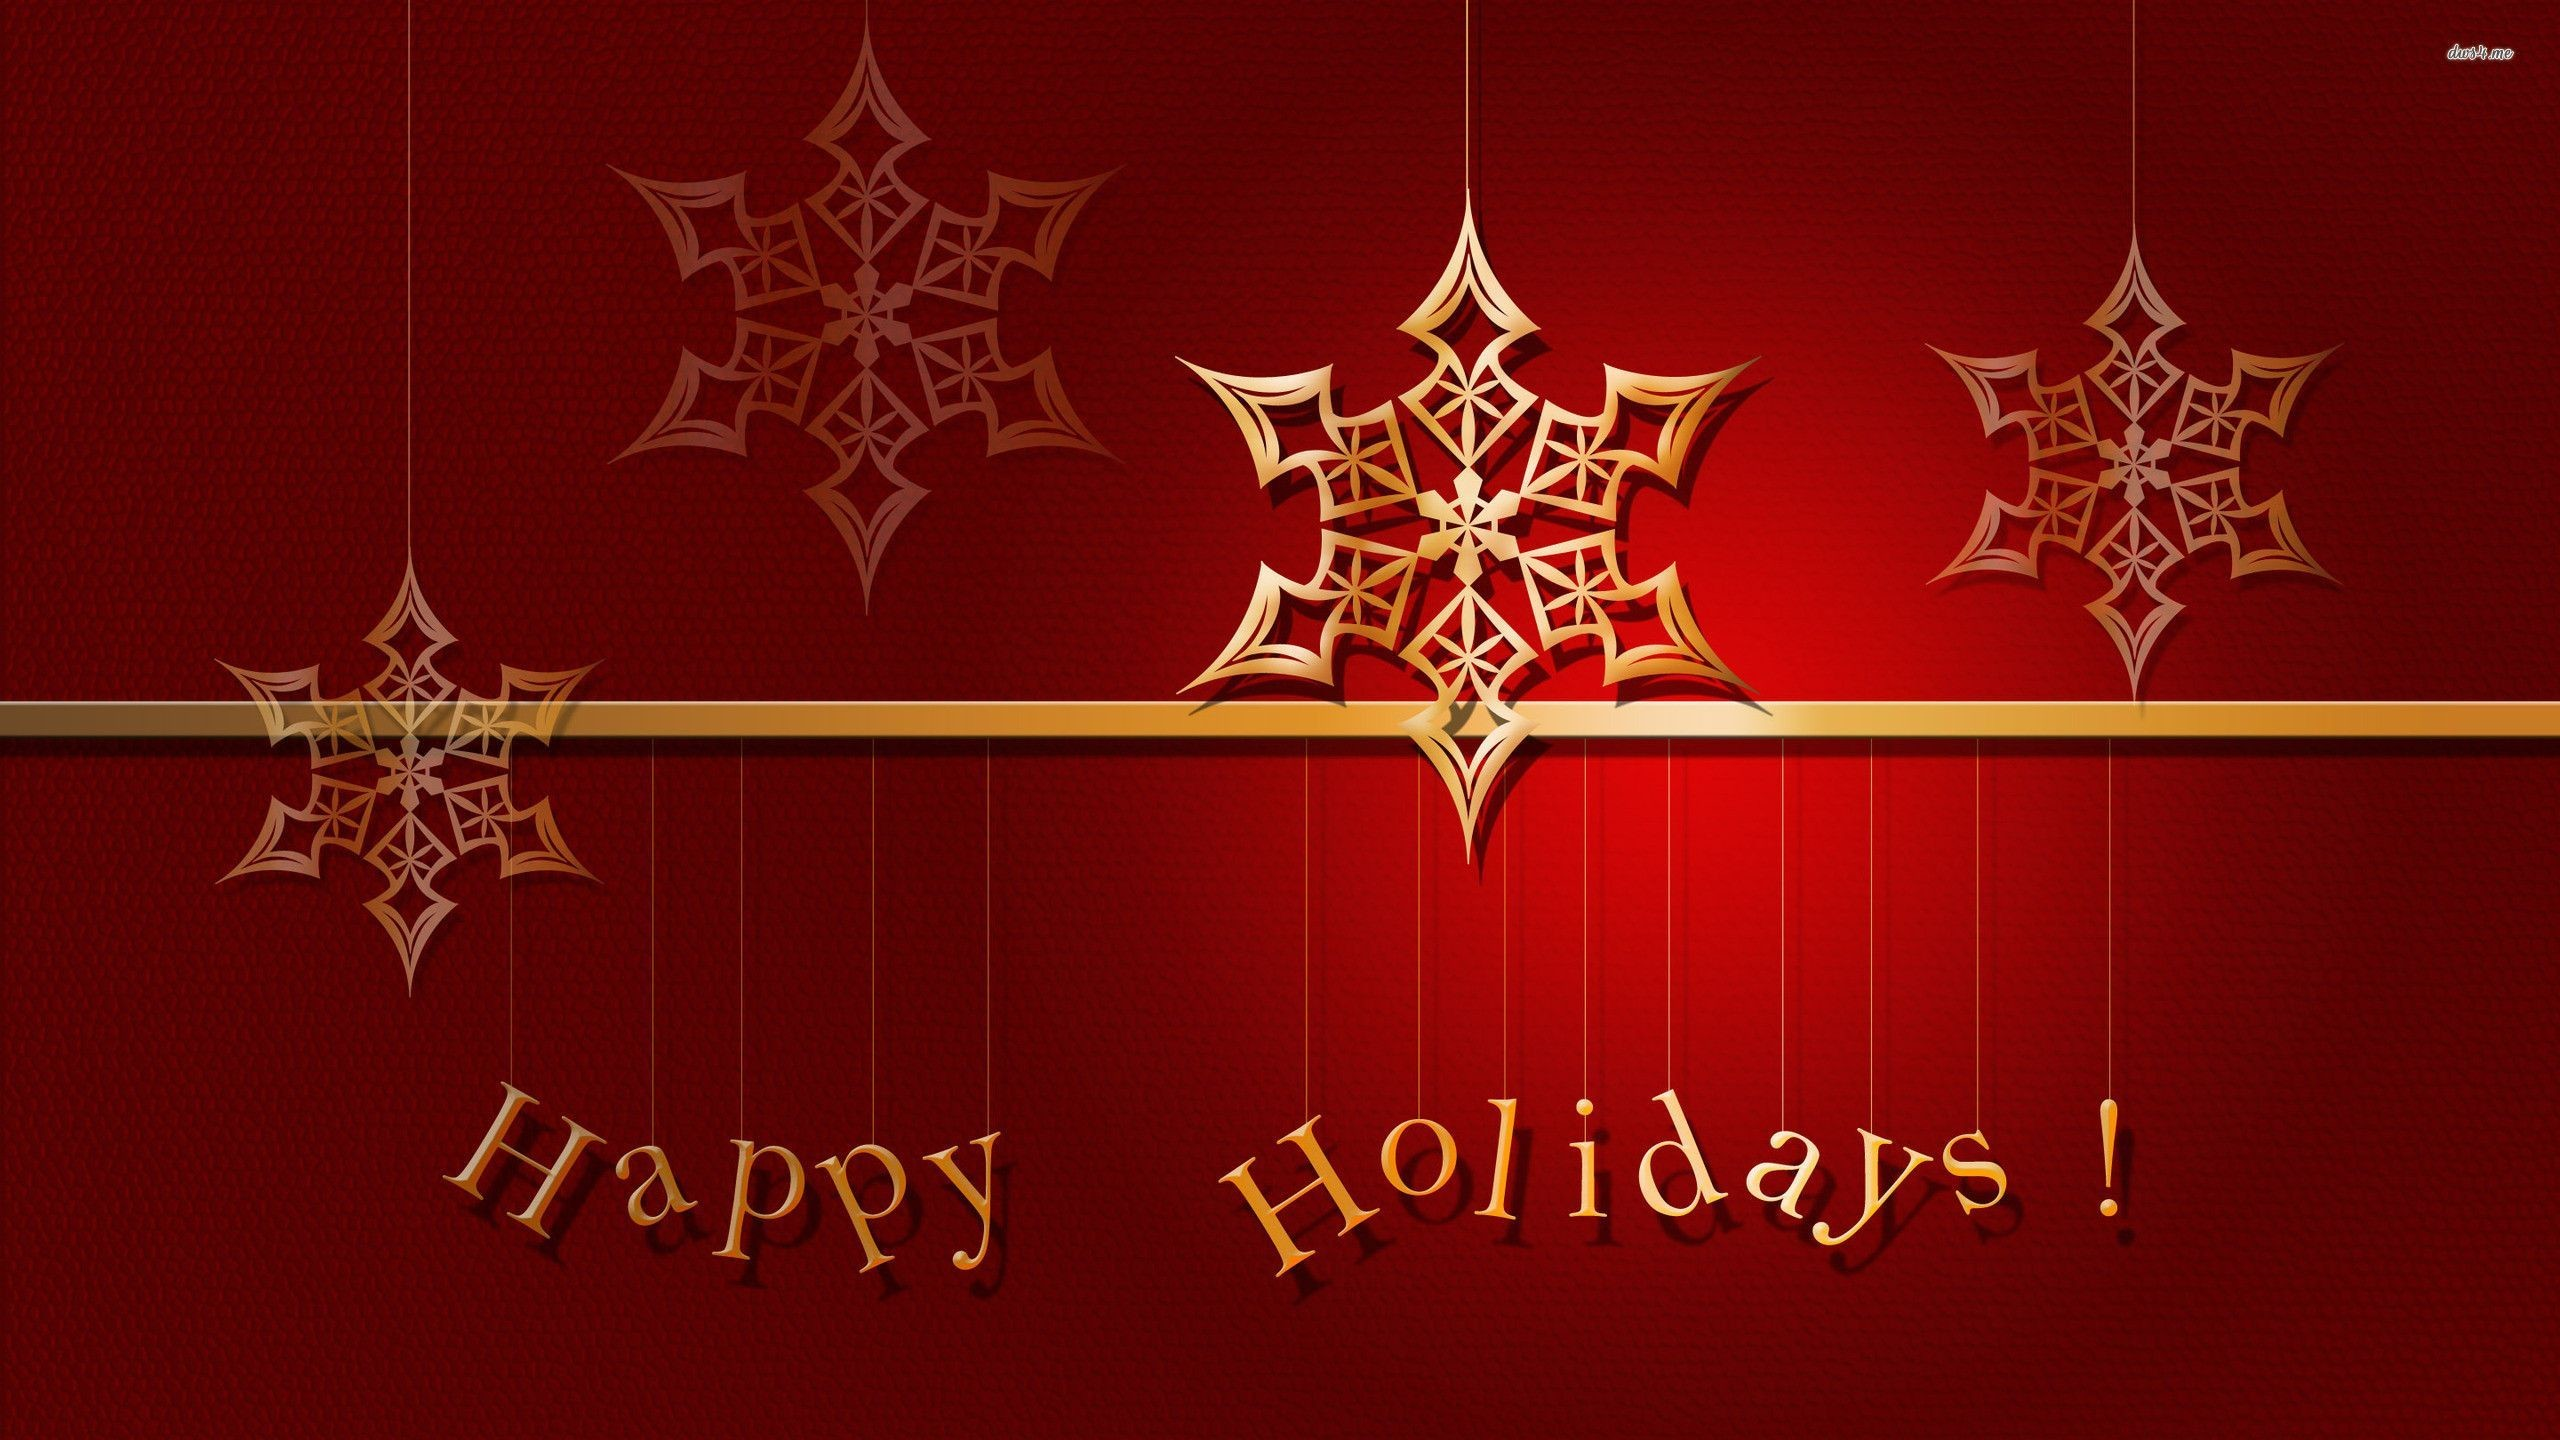 Res: 2560x1440, Happy Holidays, View: 721070432 Happy Holidays, GanZHenjuN.com